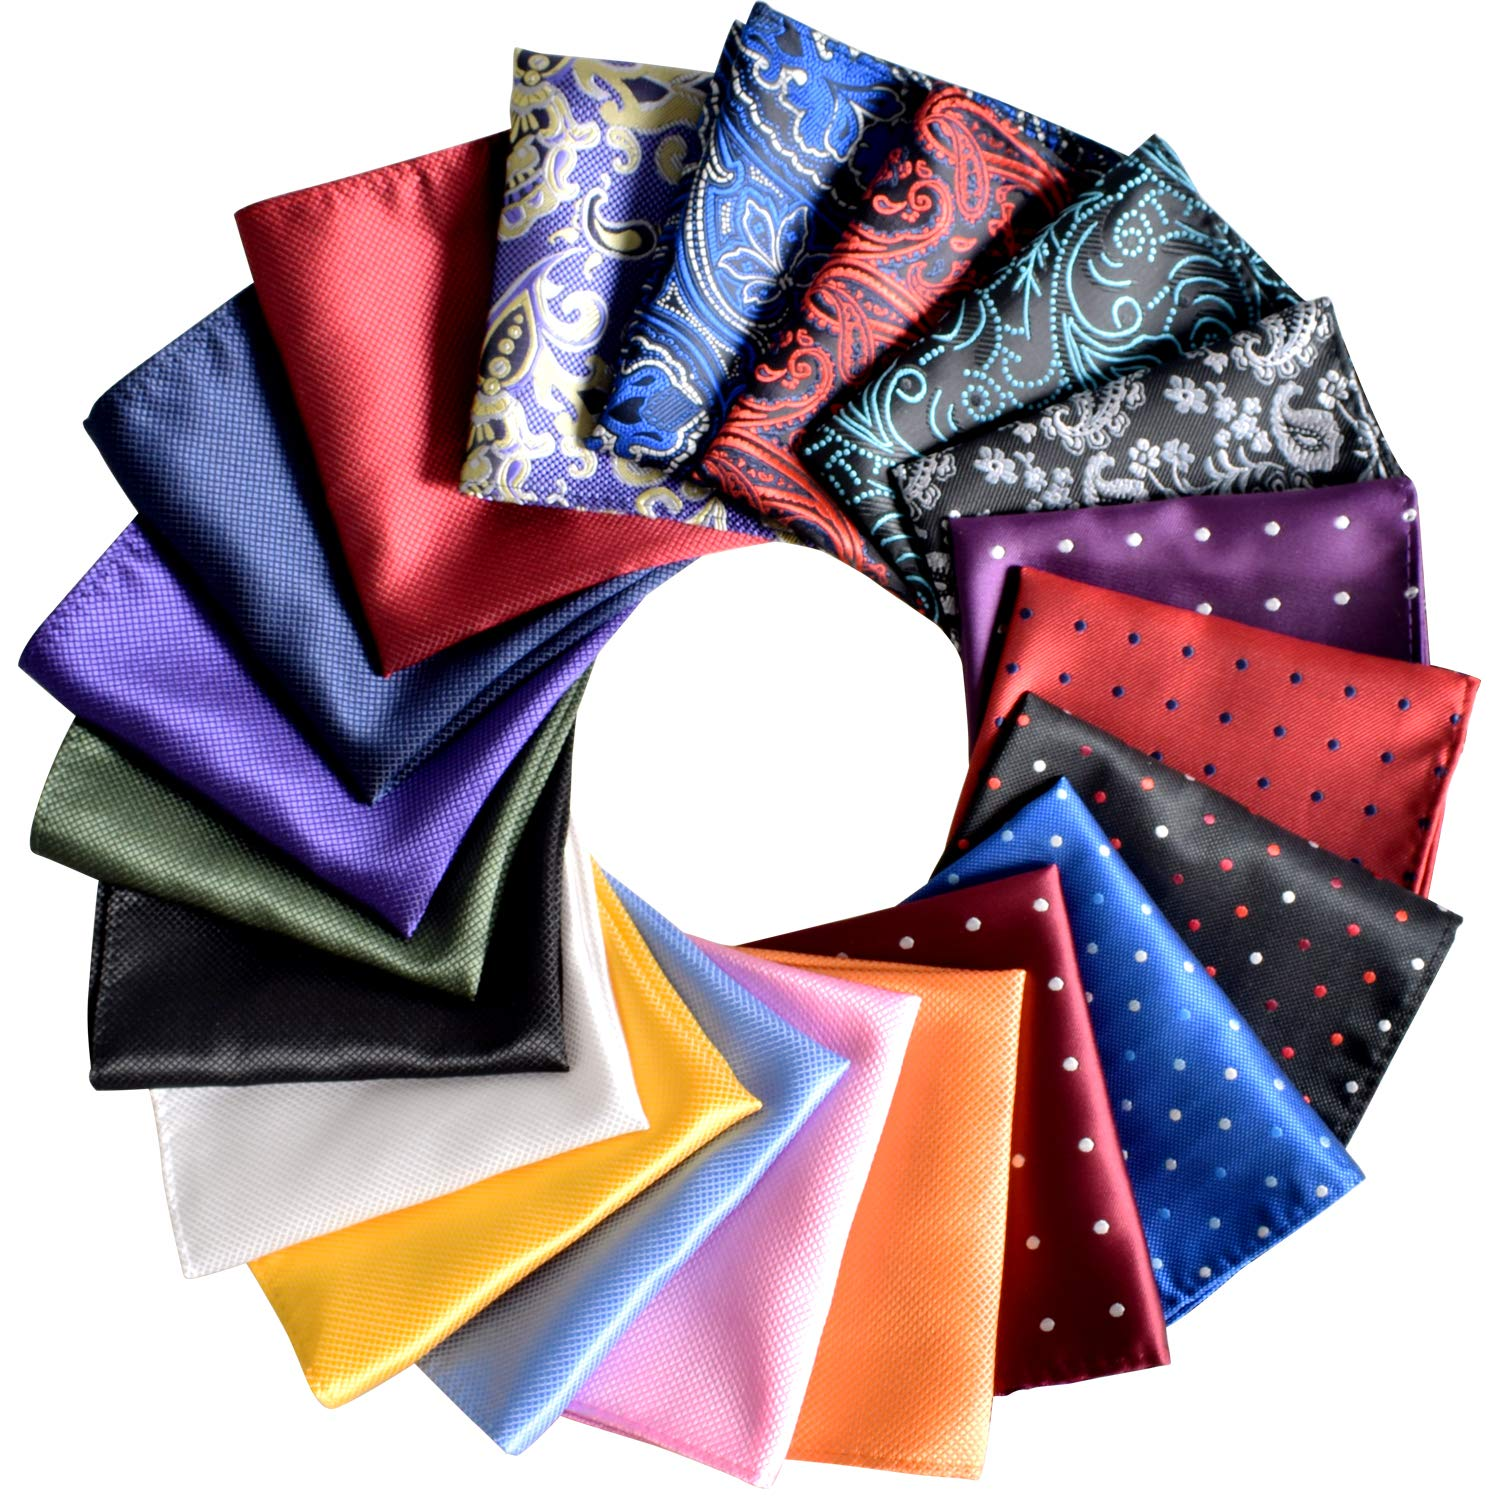 Pocket Squares for Men 20 Pack Mens Pocket Squares Set Assorted Colors with Gift Box by Jeatonge